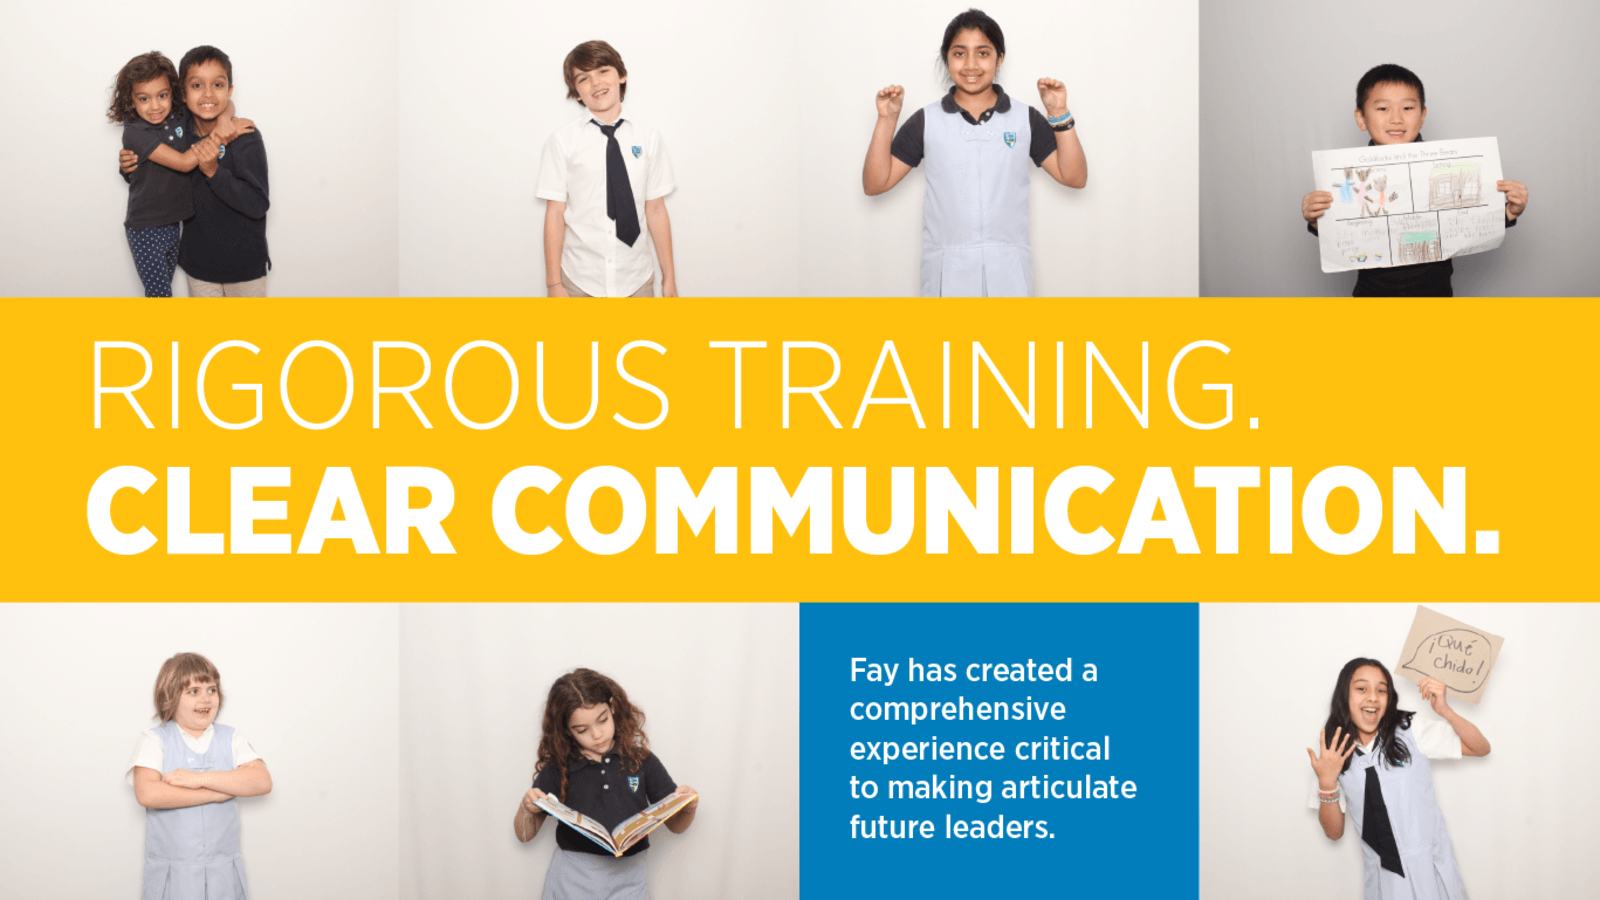 homepage slider of children who hare rigorous training and clearly communicate